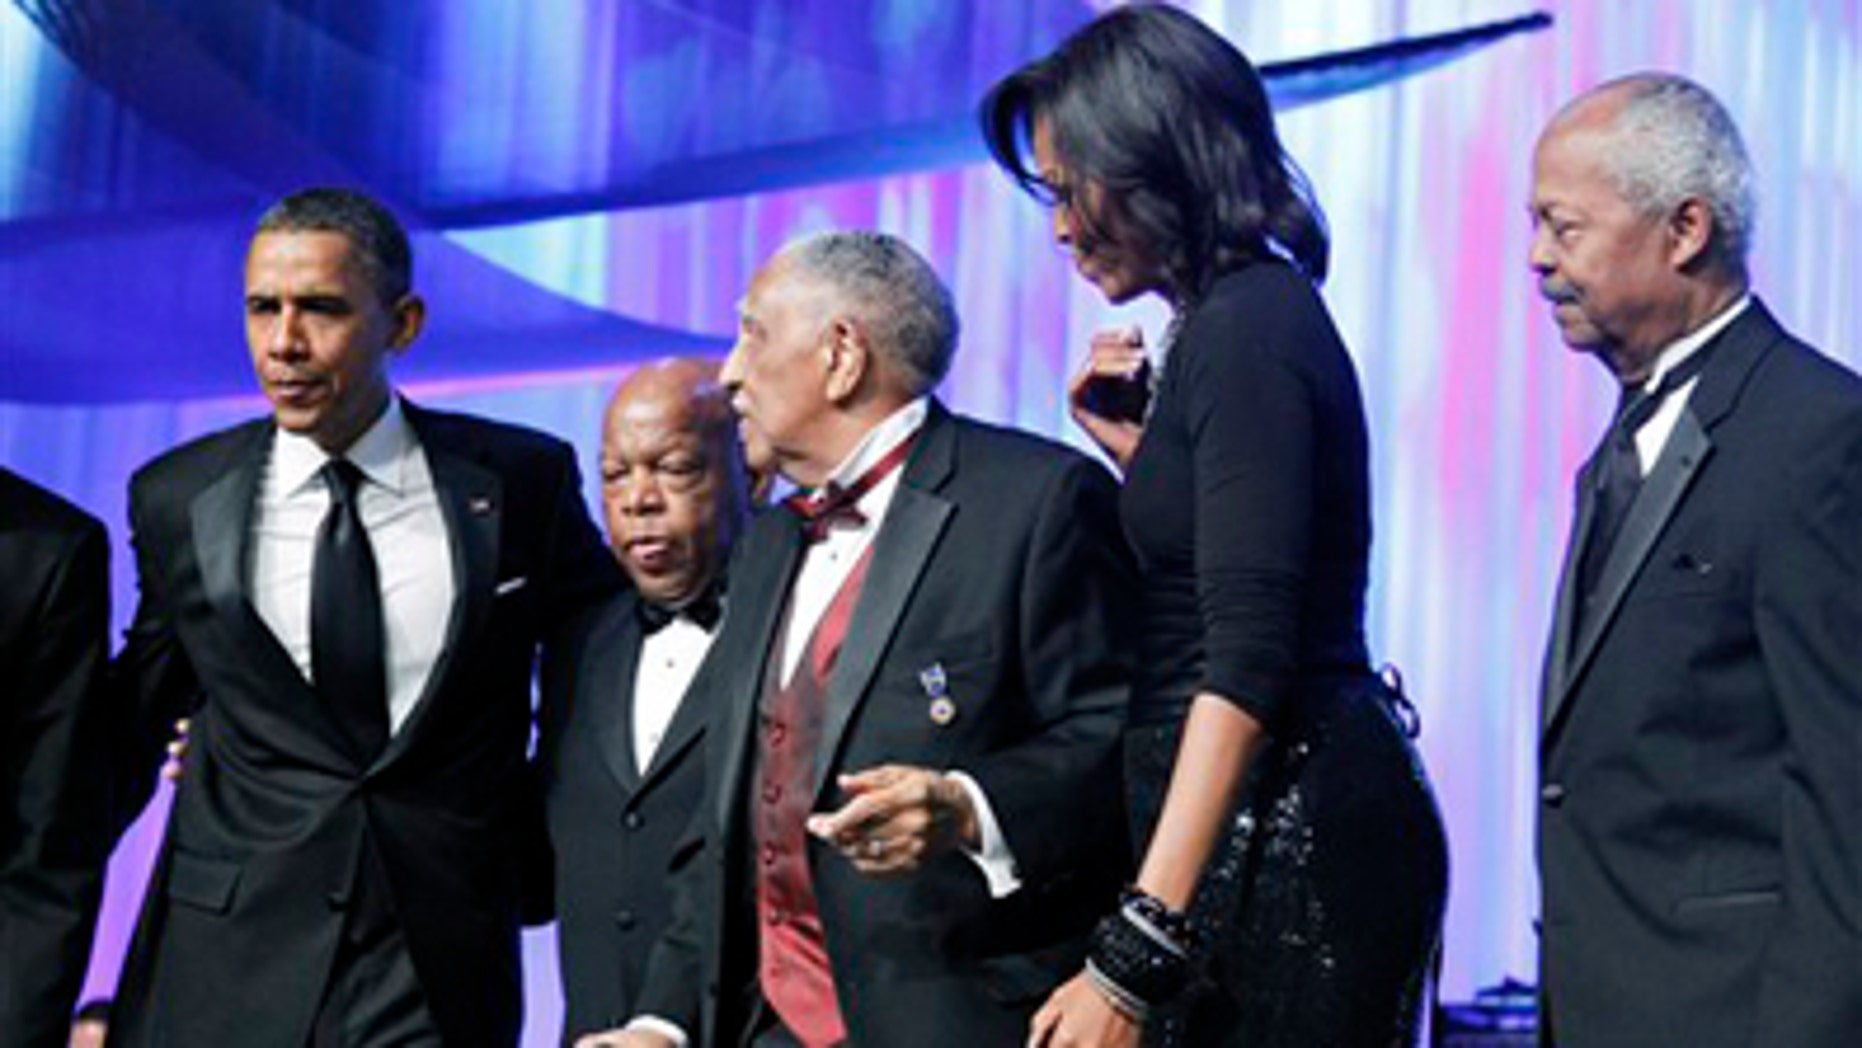 Saturday: President Obama, Rep. John Lewis, D-Ga., civil rights leader Rev. Joseph E. Lowery, first lady Michelle Obama, and CBC Foundation Chairman Rep. Donald M. Payne, D-N.J., stand on-stage during the Congressional Black Caucus Foundation Foundation Annual Phoenix Awards in Washington.